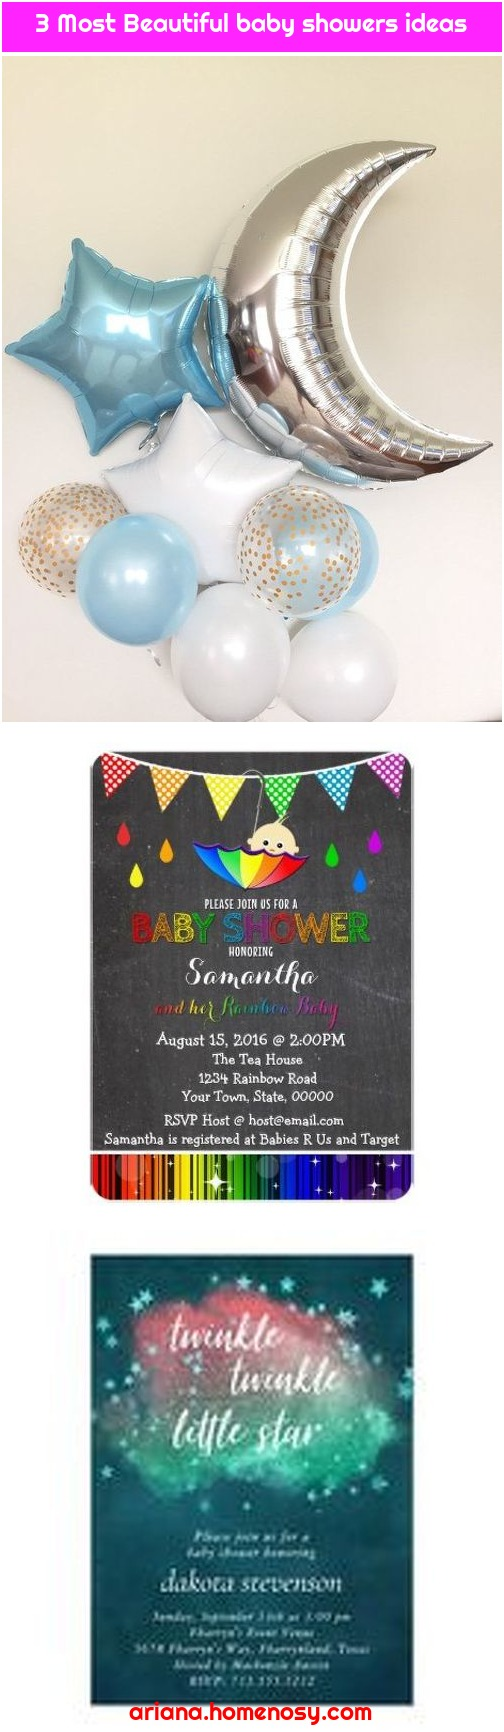 3 Most Beautiful baby showers ideas